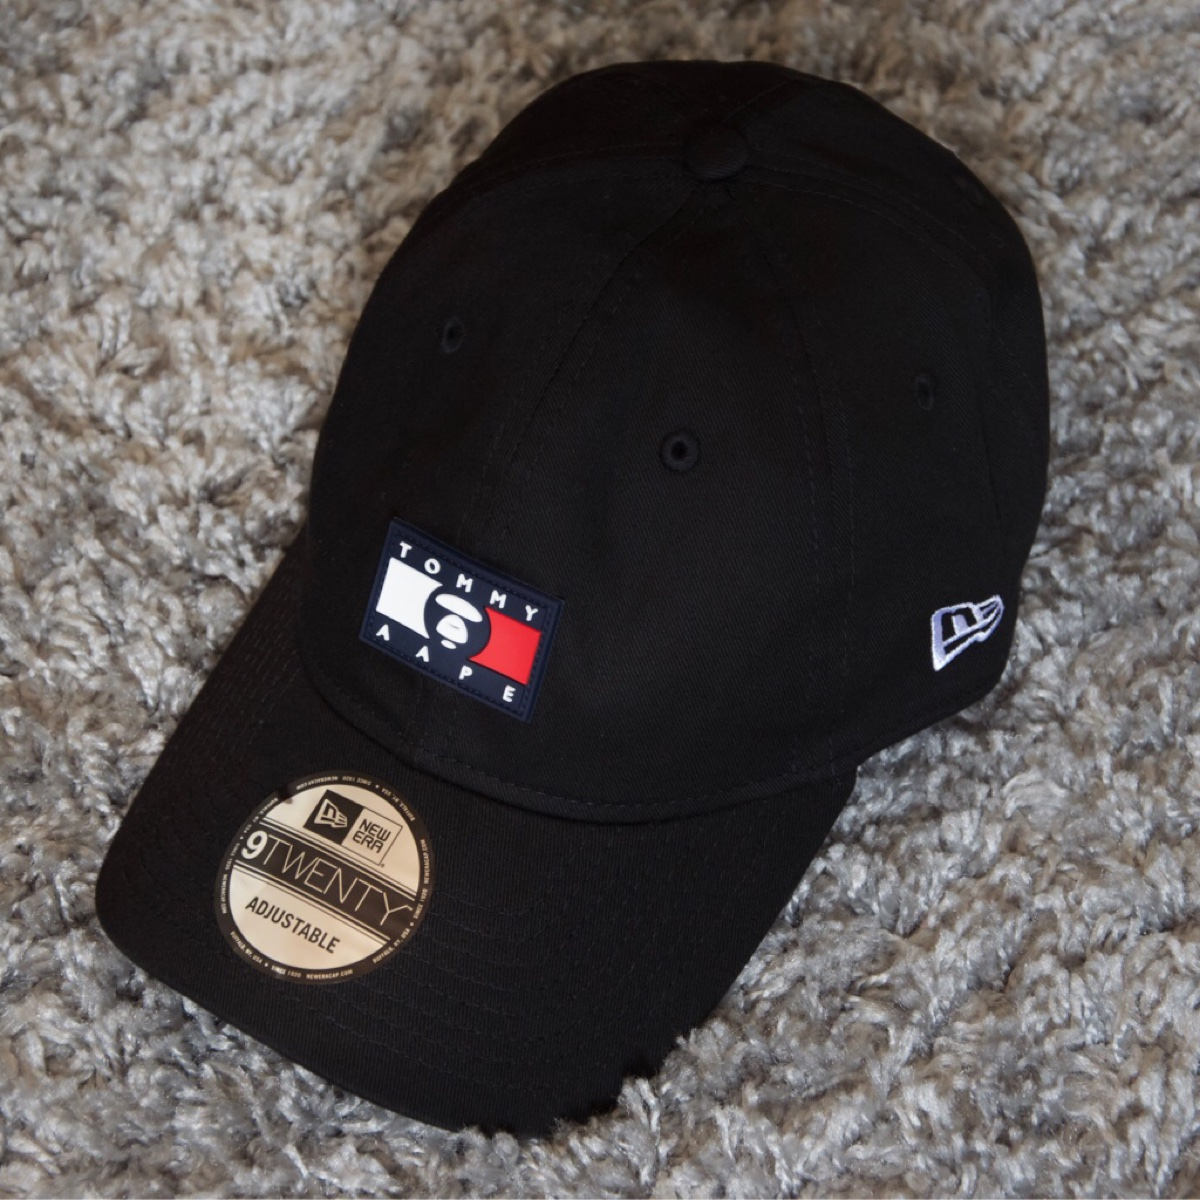 Tommy x Aape x New Era cap